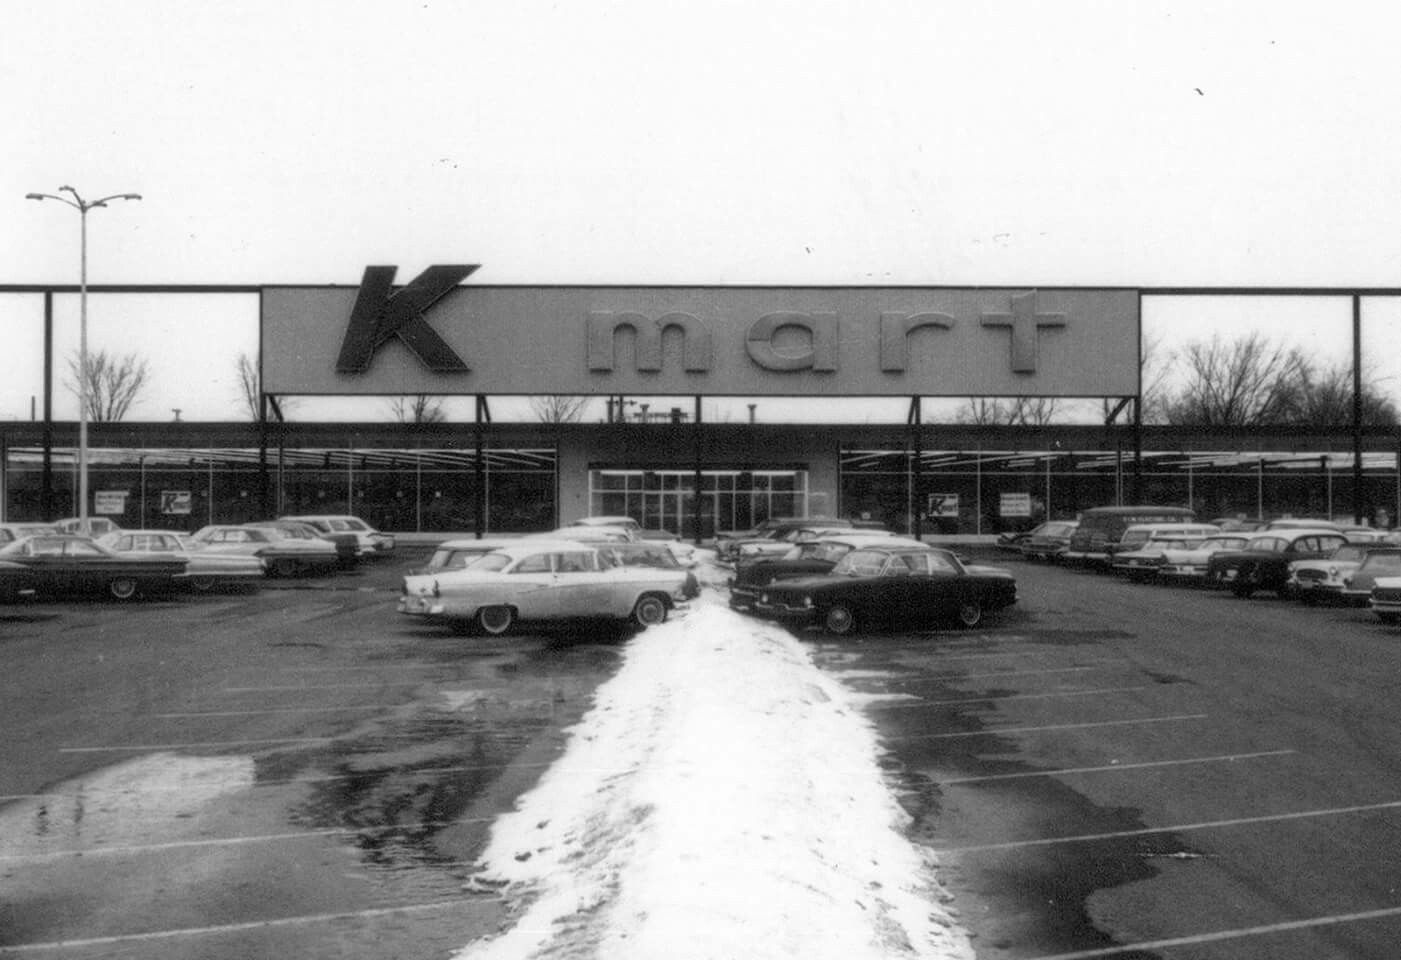 Pin By Tammy Reese On Retro Street Scenes Pictures Kmart